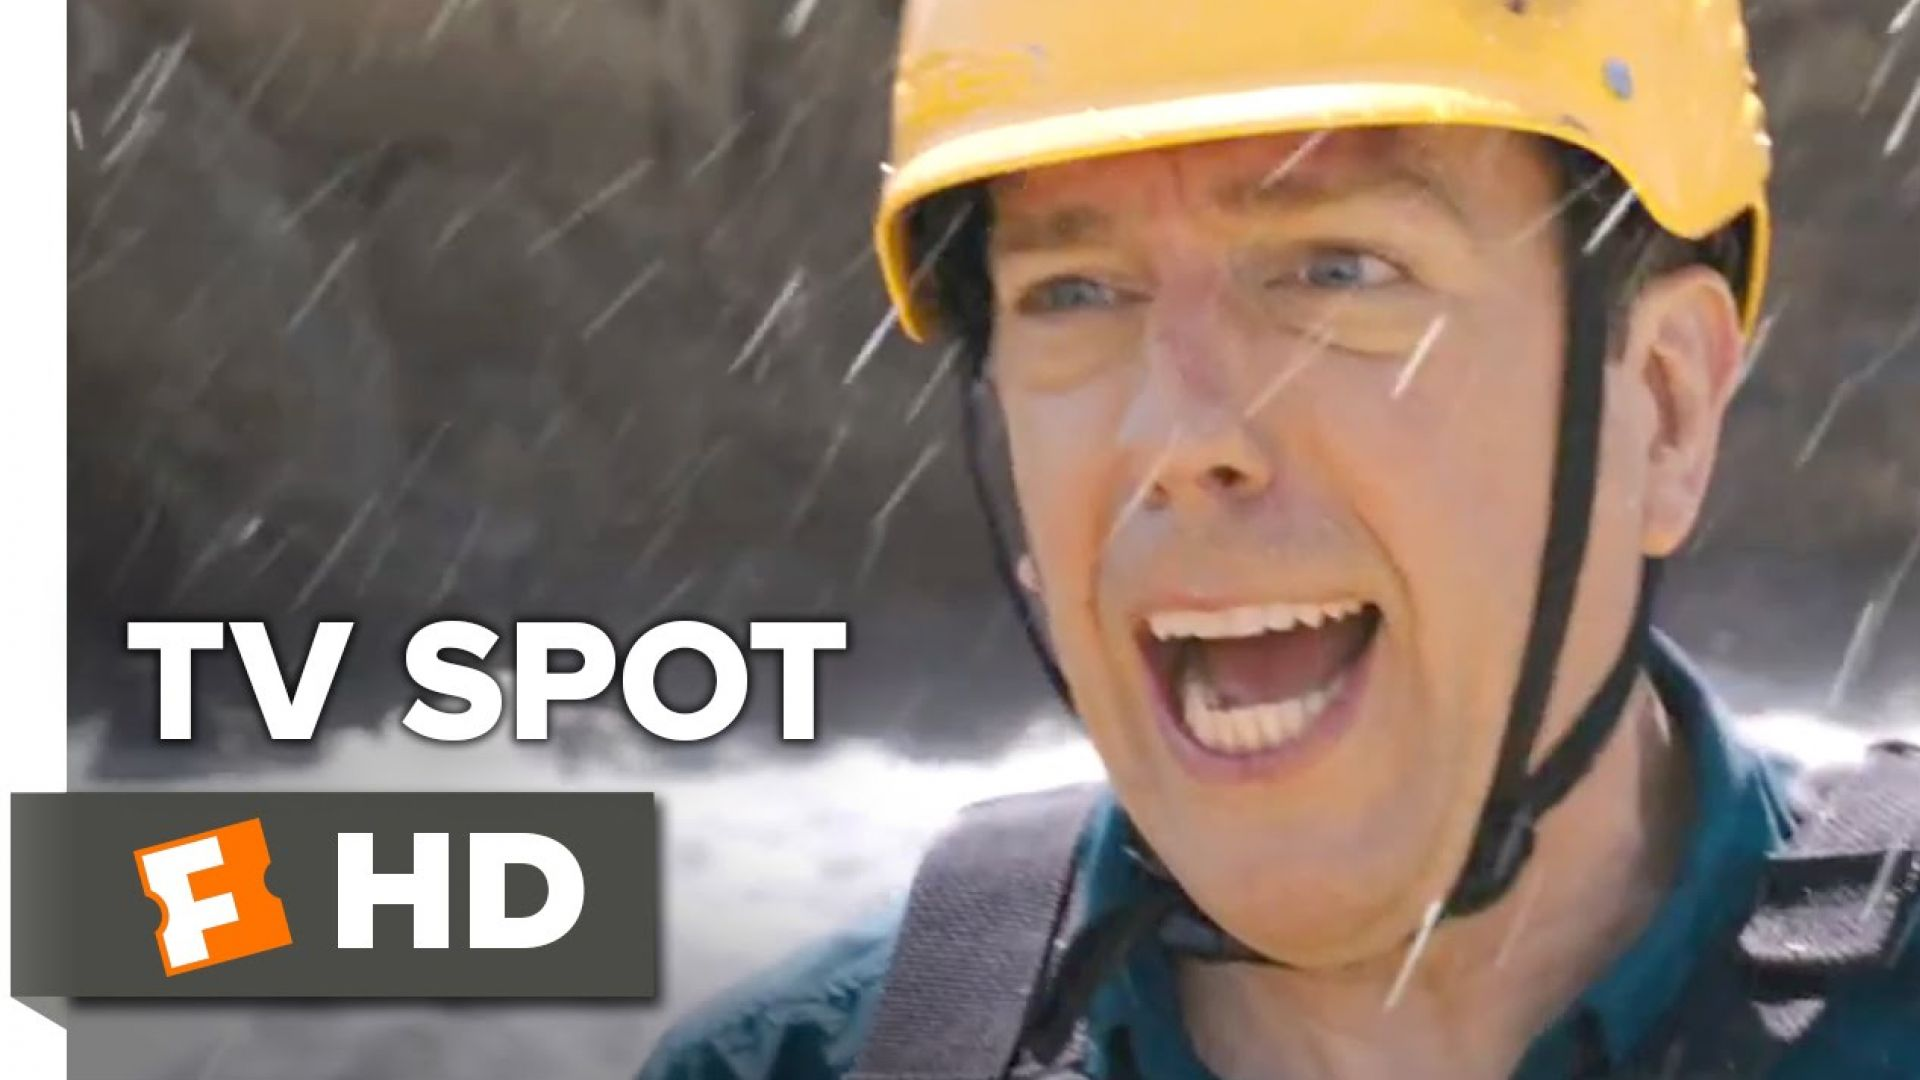 Ed Helms and Christina Applegate have some fun in the car in